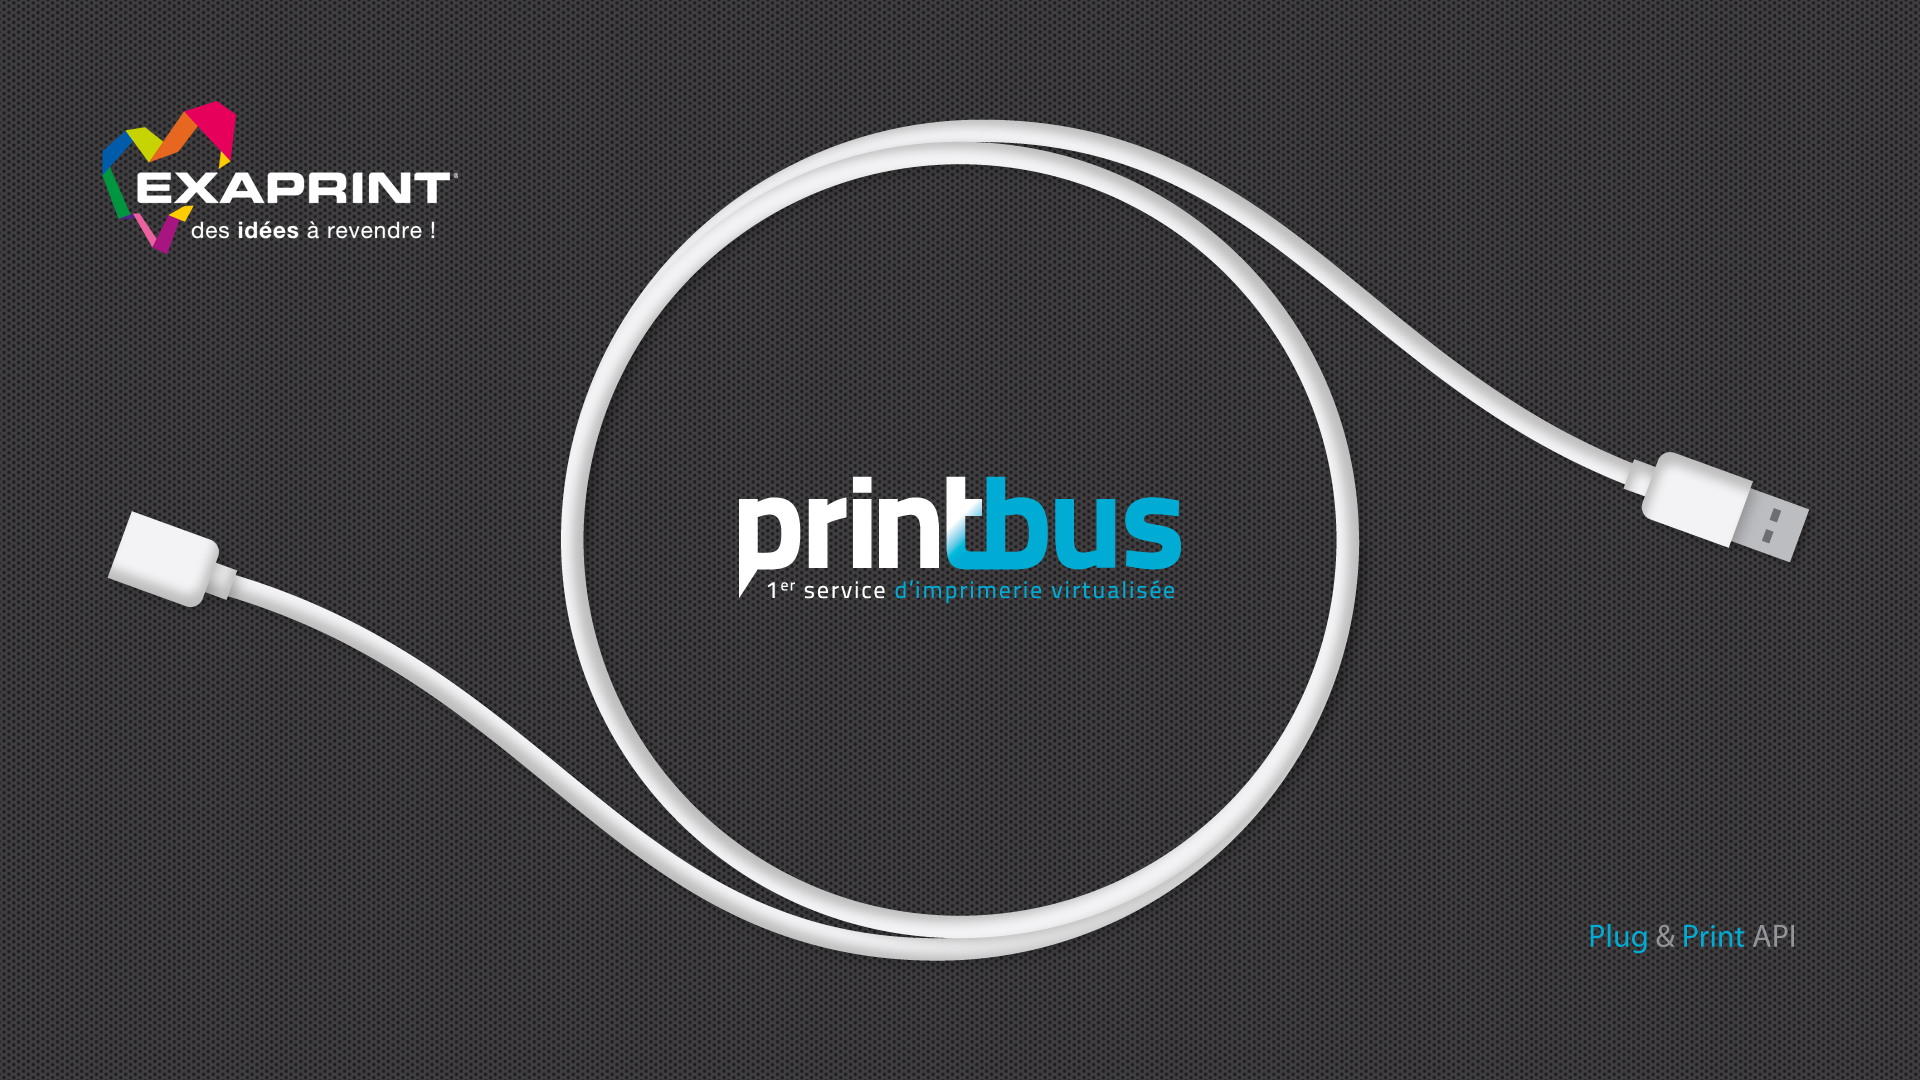 printbus-creation-logo-brochure-concept-illustrations-caconcept-alexis-cretin-graphiste-montpellier